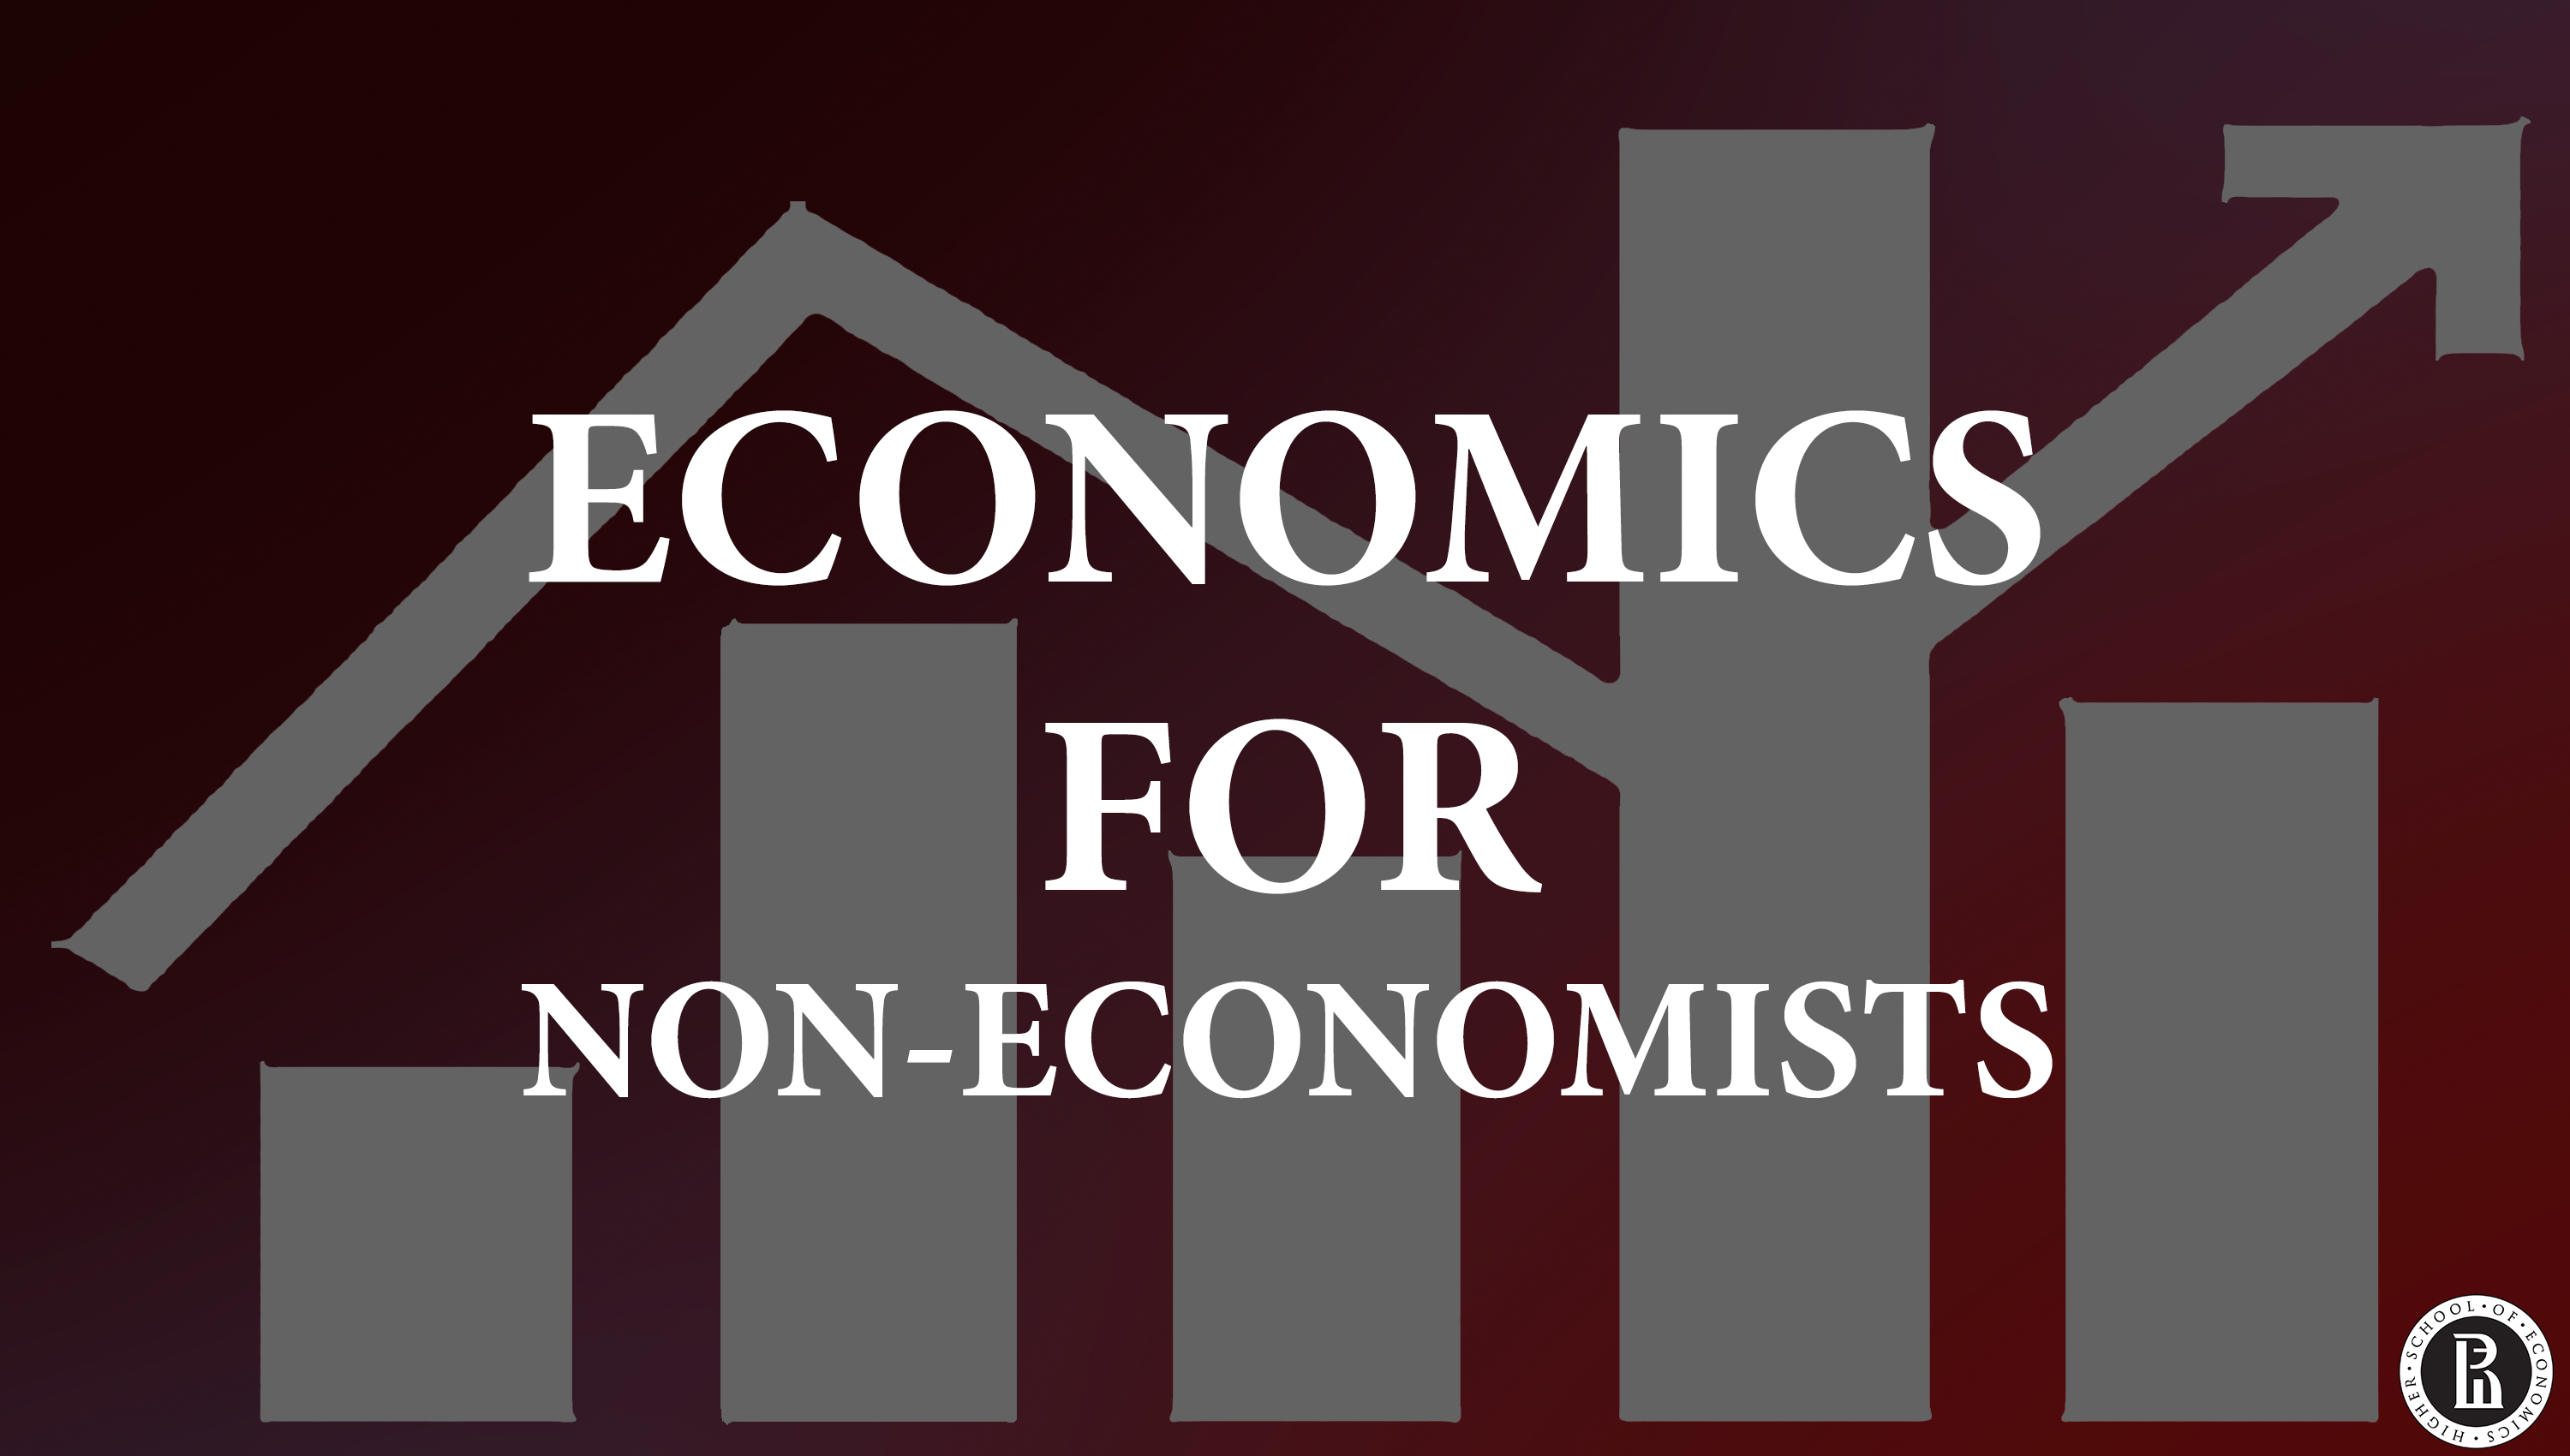 Экономика для неэкономистов (Economics for non-economists)